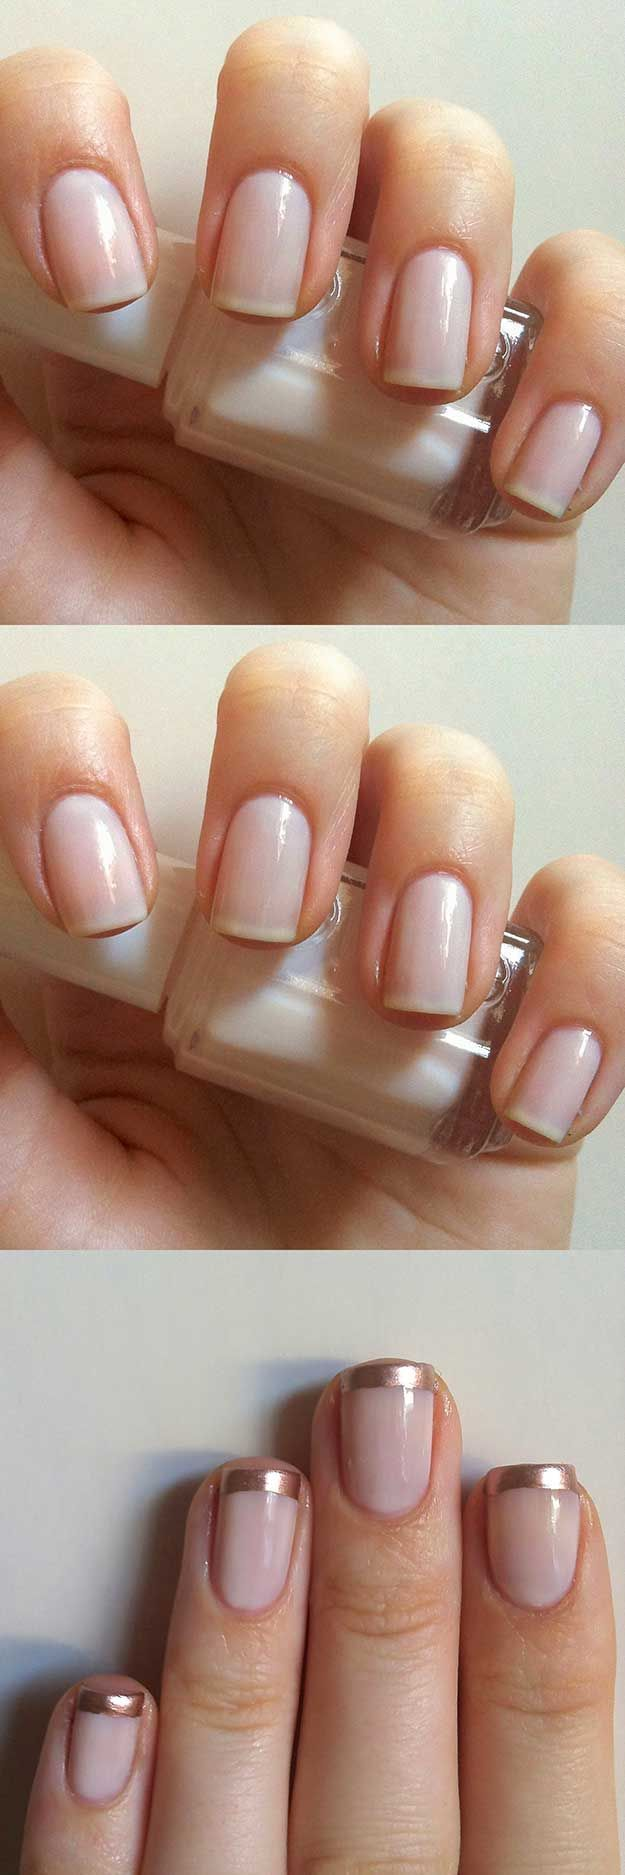 Best French Manicure Tutorials To Do At Home Rose Gold French